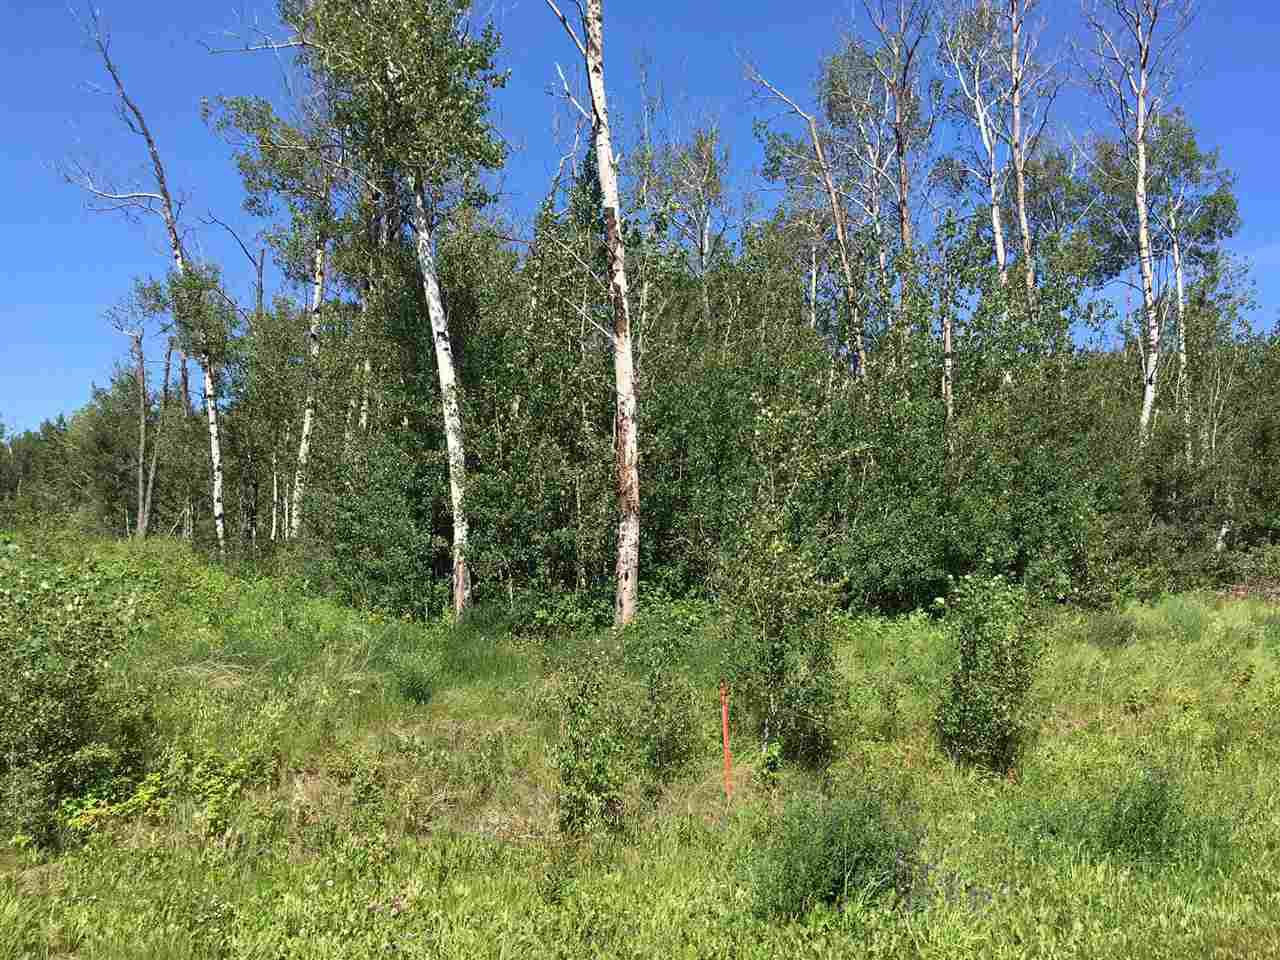 Main Photo: Lot 6 645048 Rge Rd 200: Rural Athabasca County Rural Land/Vacant Lot for sale : MLS®# E4069751